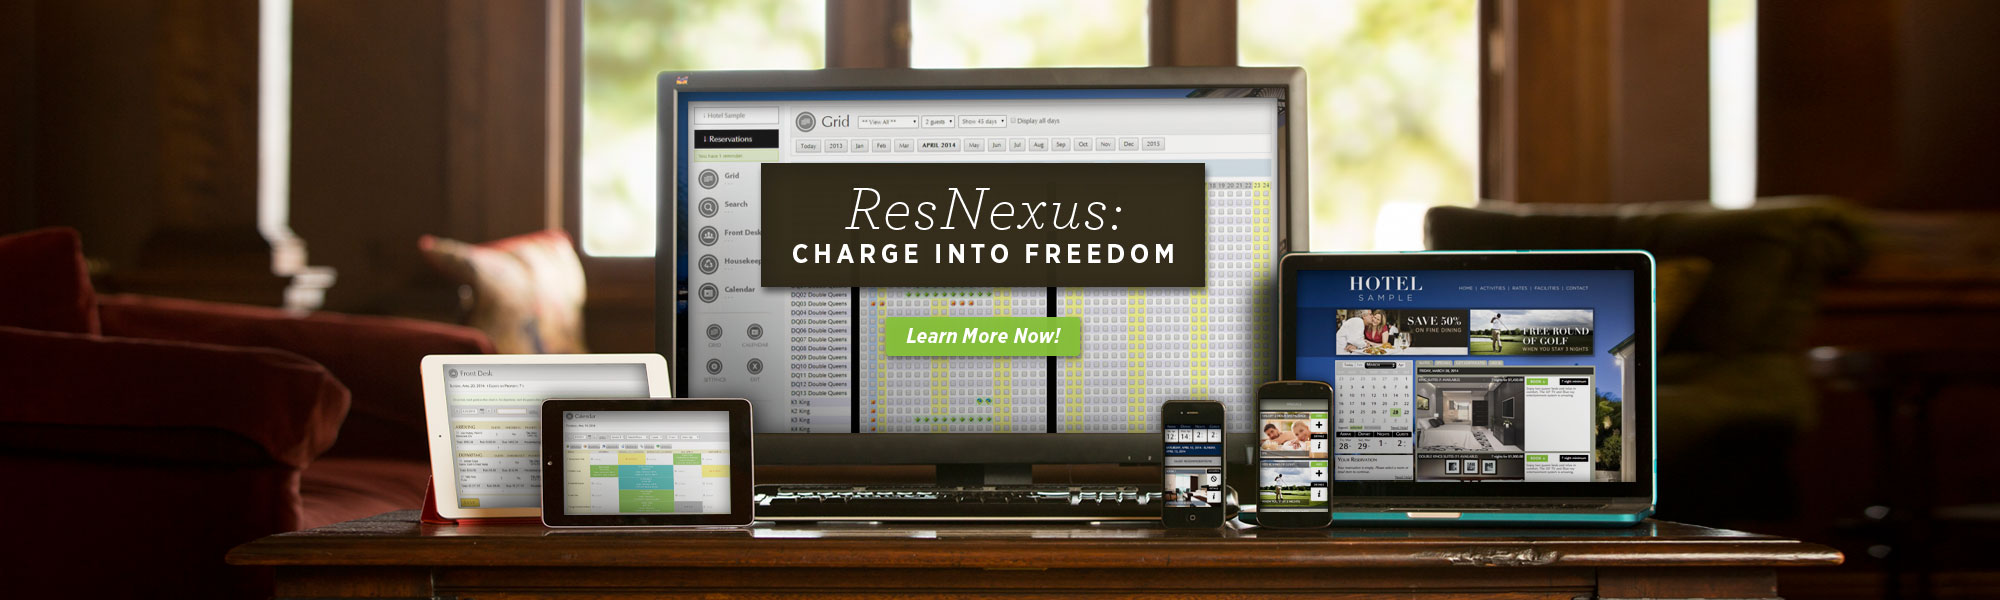 What's New in ResNexus